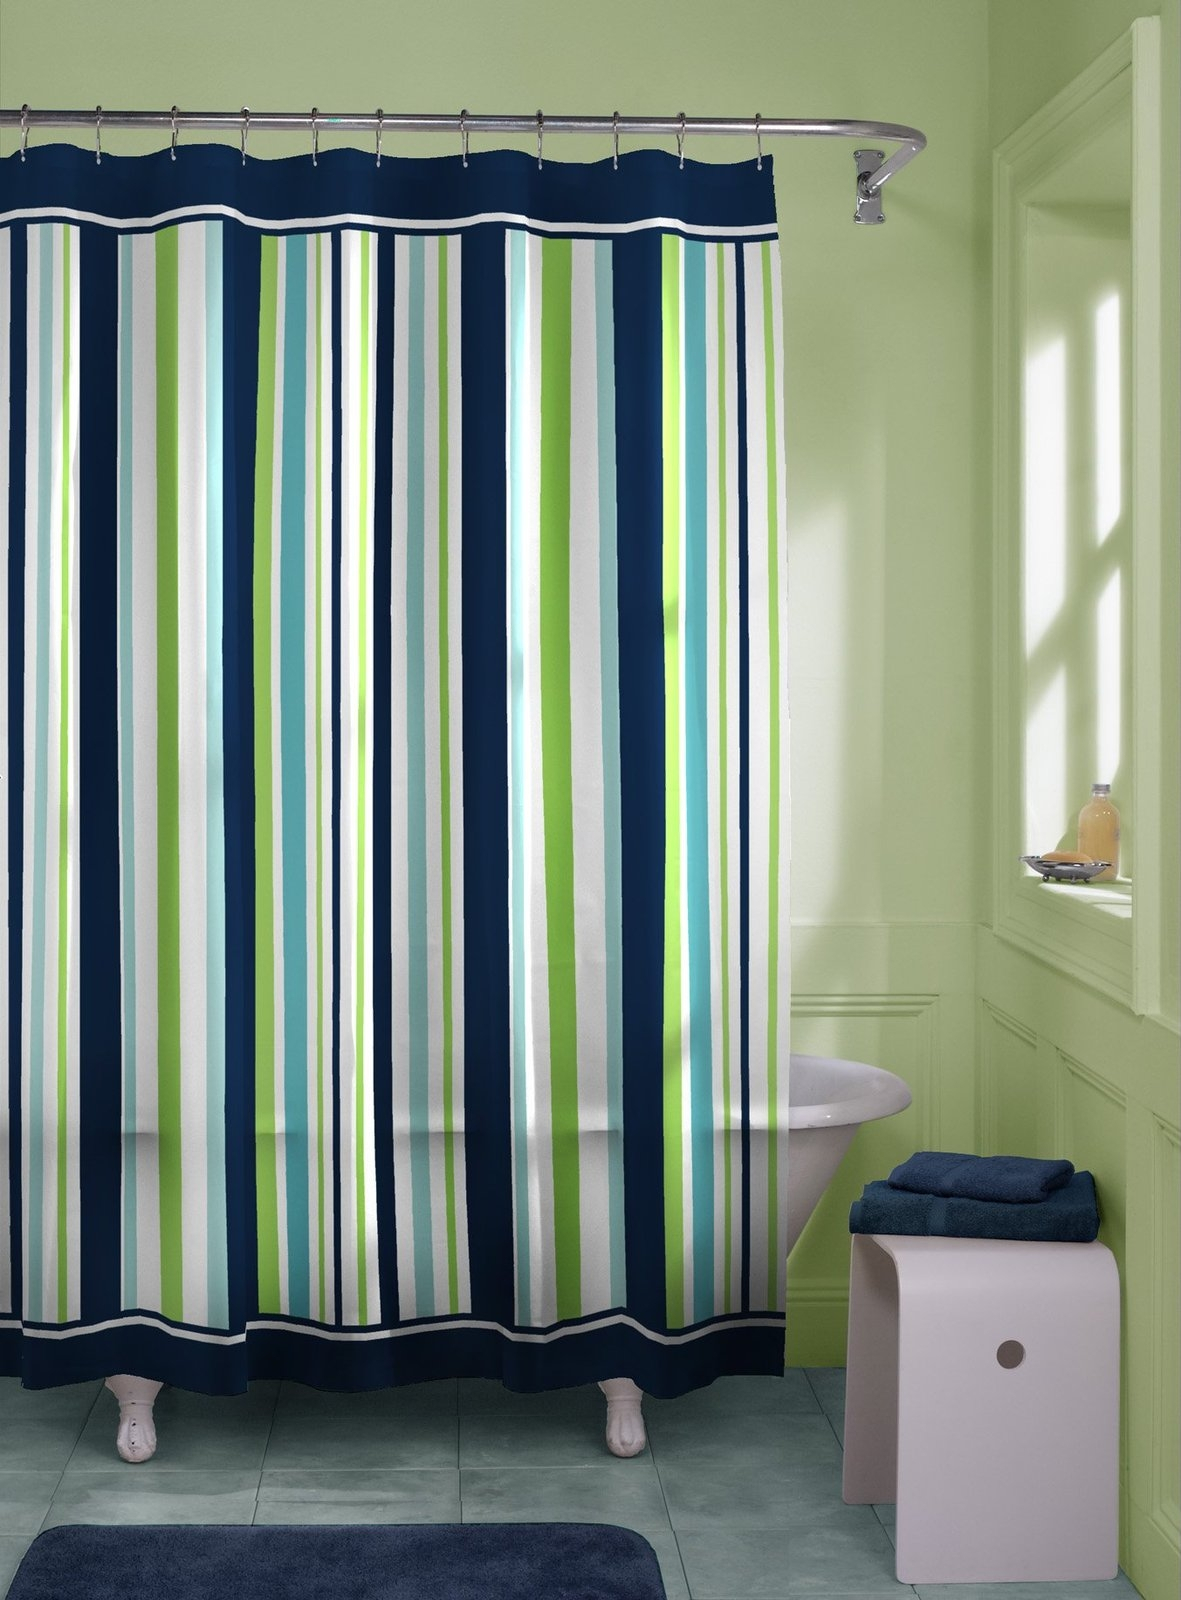 Brand new Blue And Green Striped Shower Curtains • Shower Curtains Ideas DL08